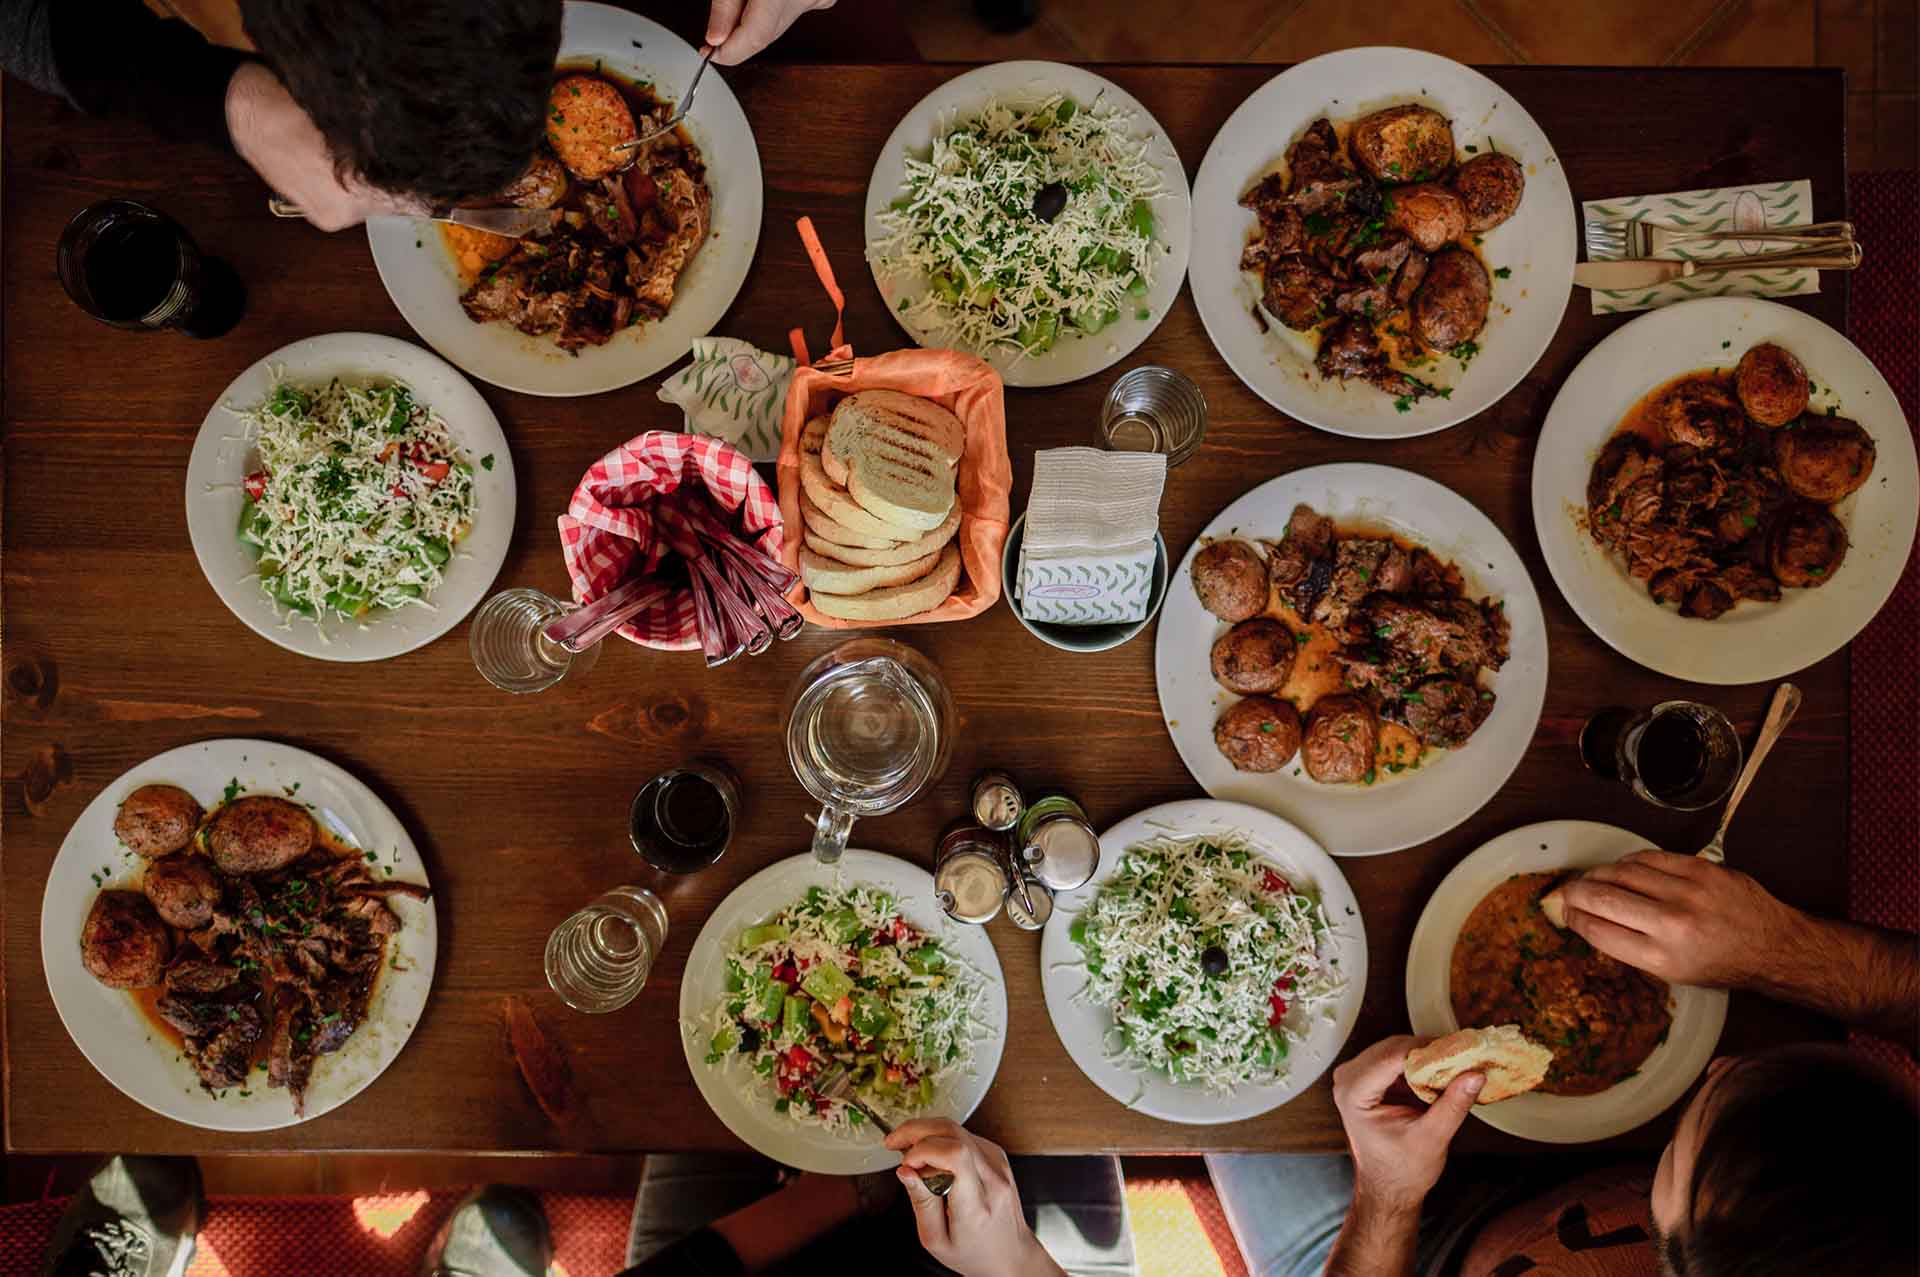 Teen Substance Abuse: Family Dinners Are the Key